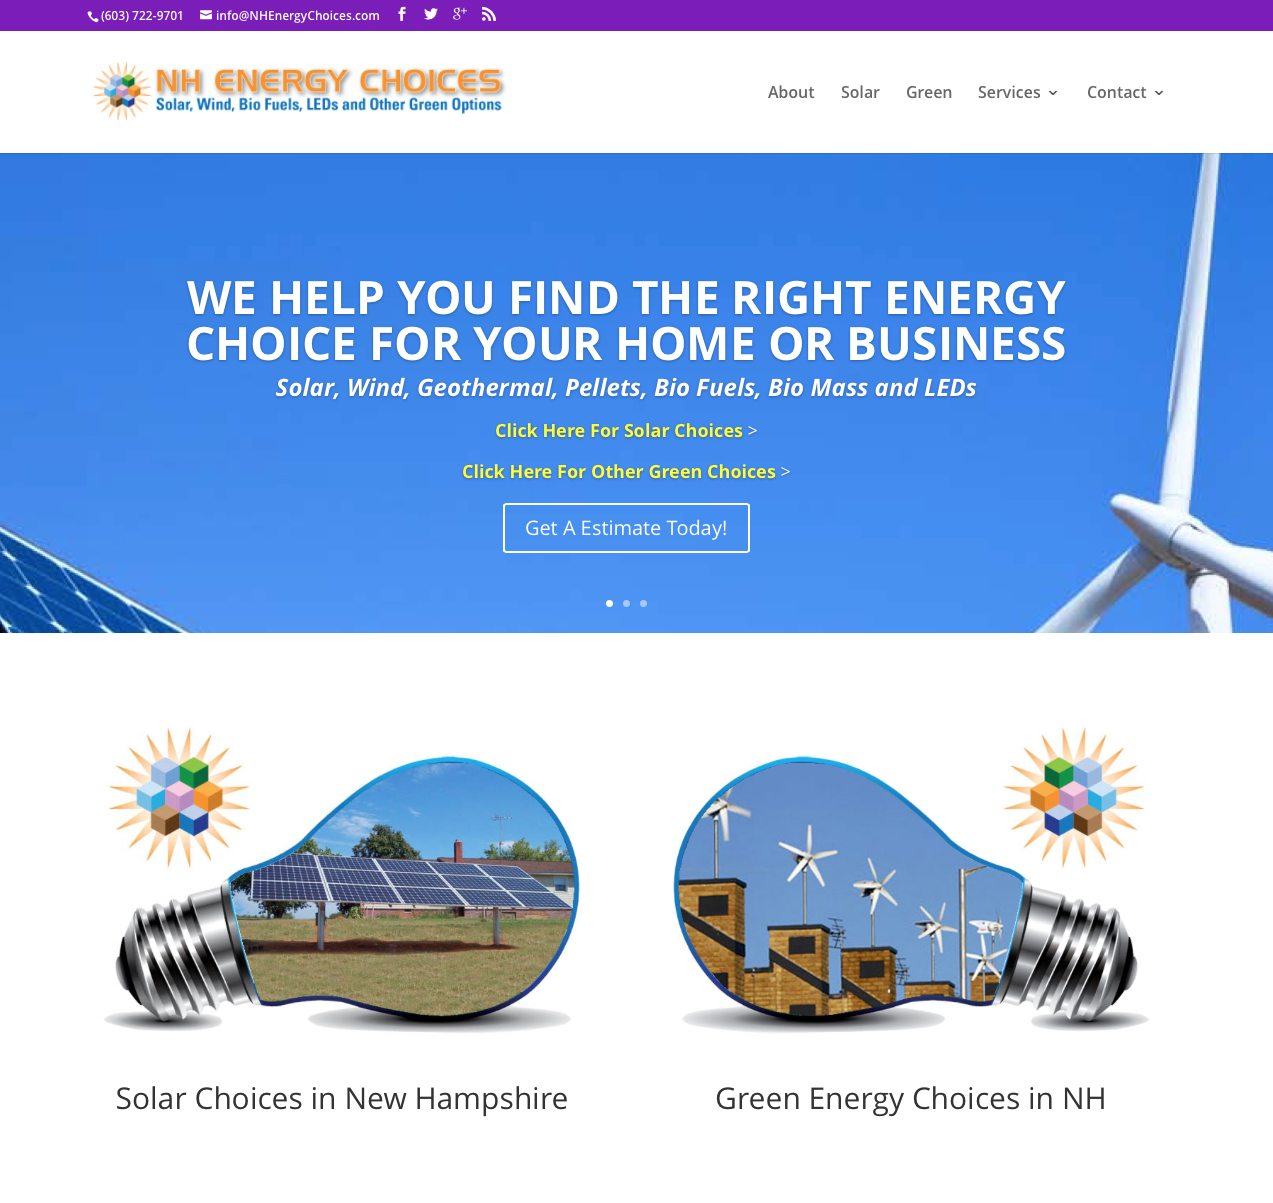 nh-energy-choices-homepage